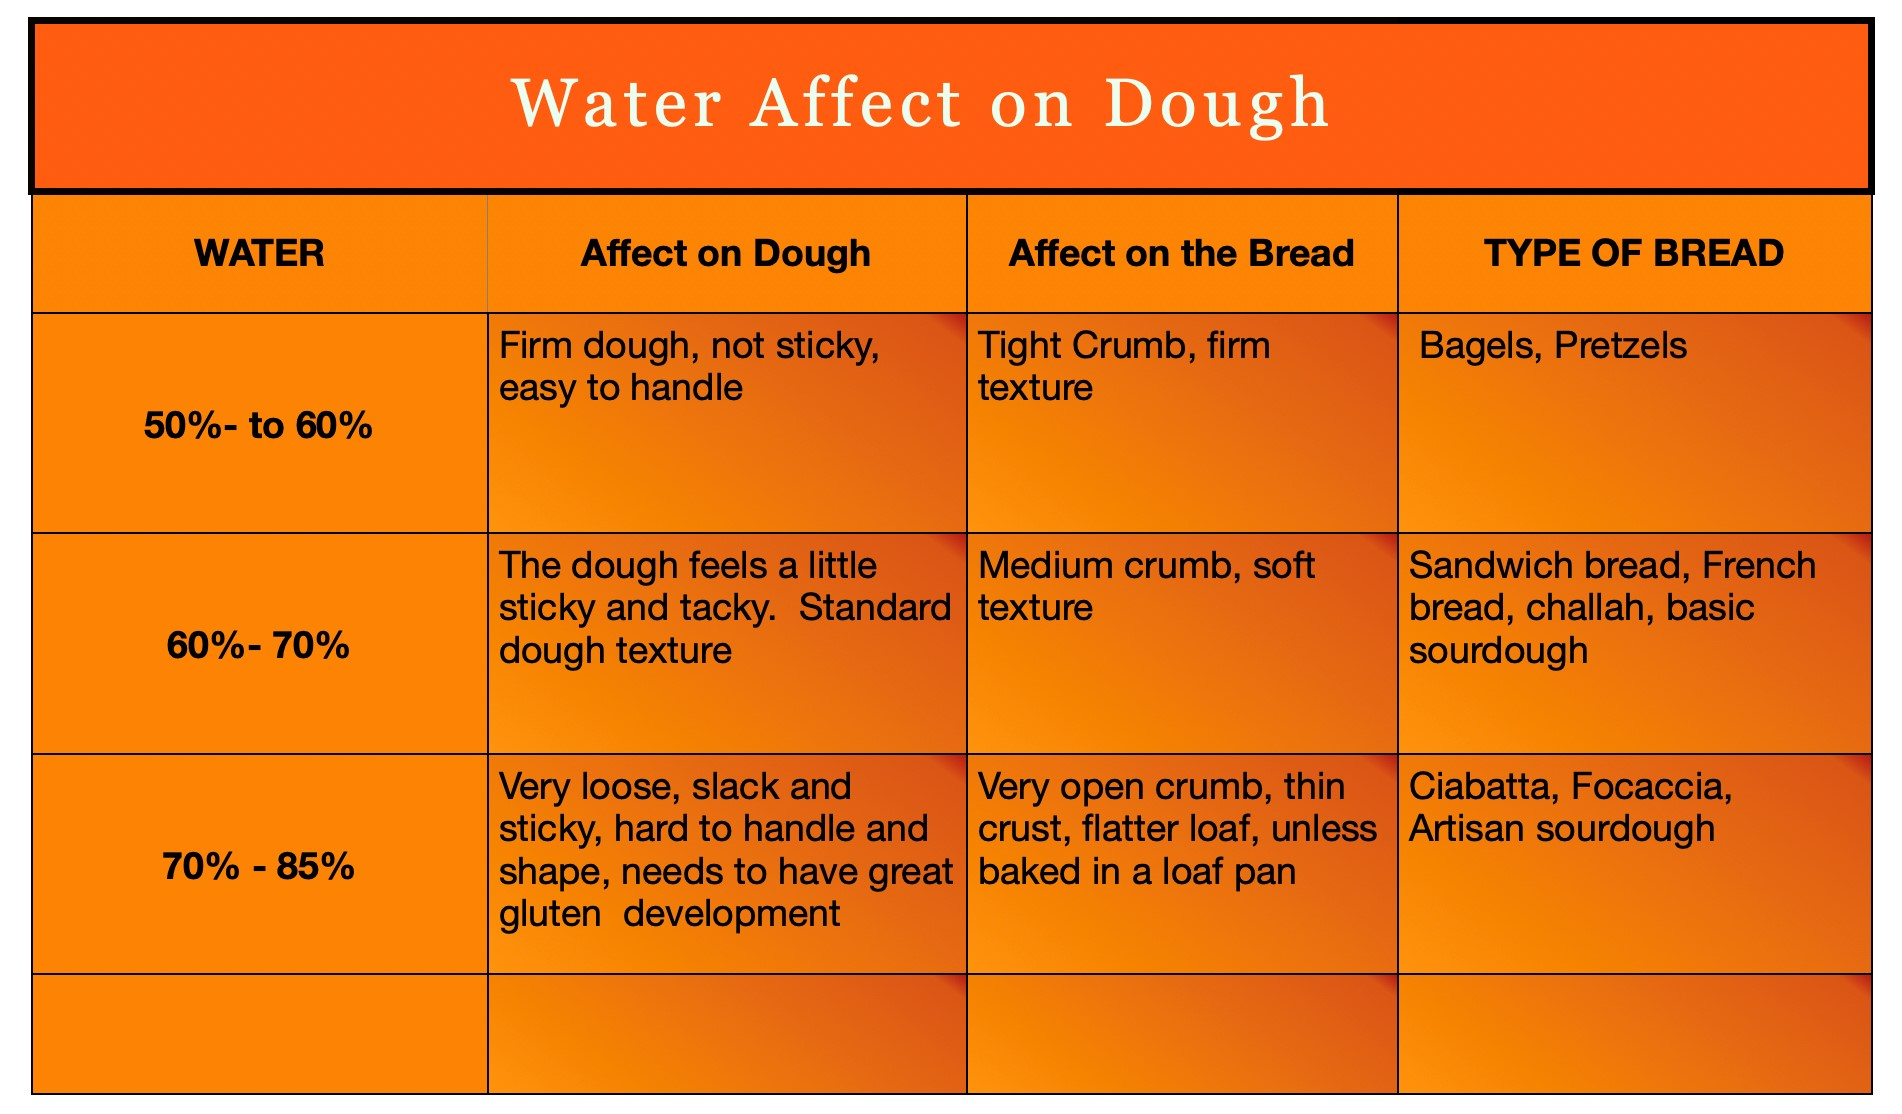 Chart of waters effect on dough